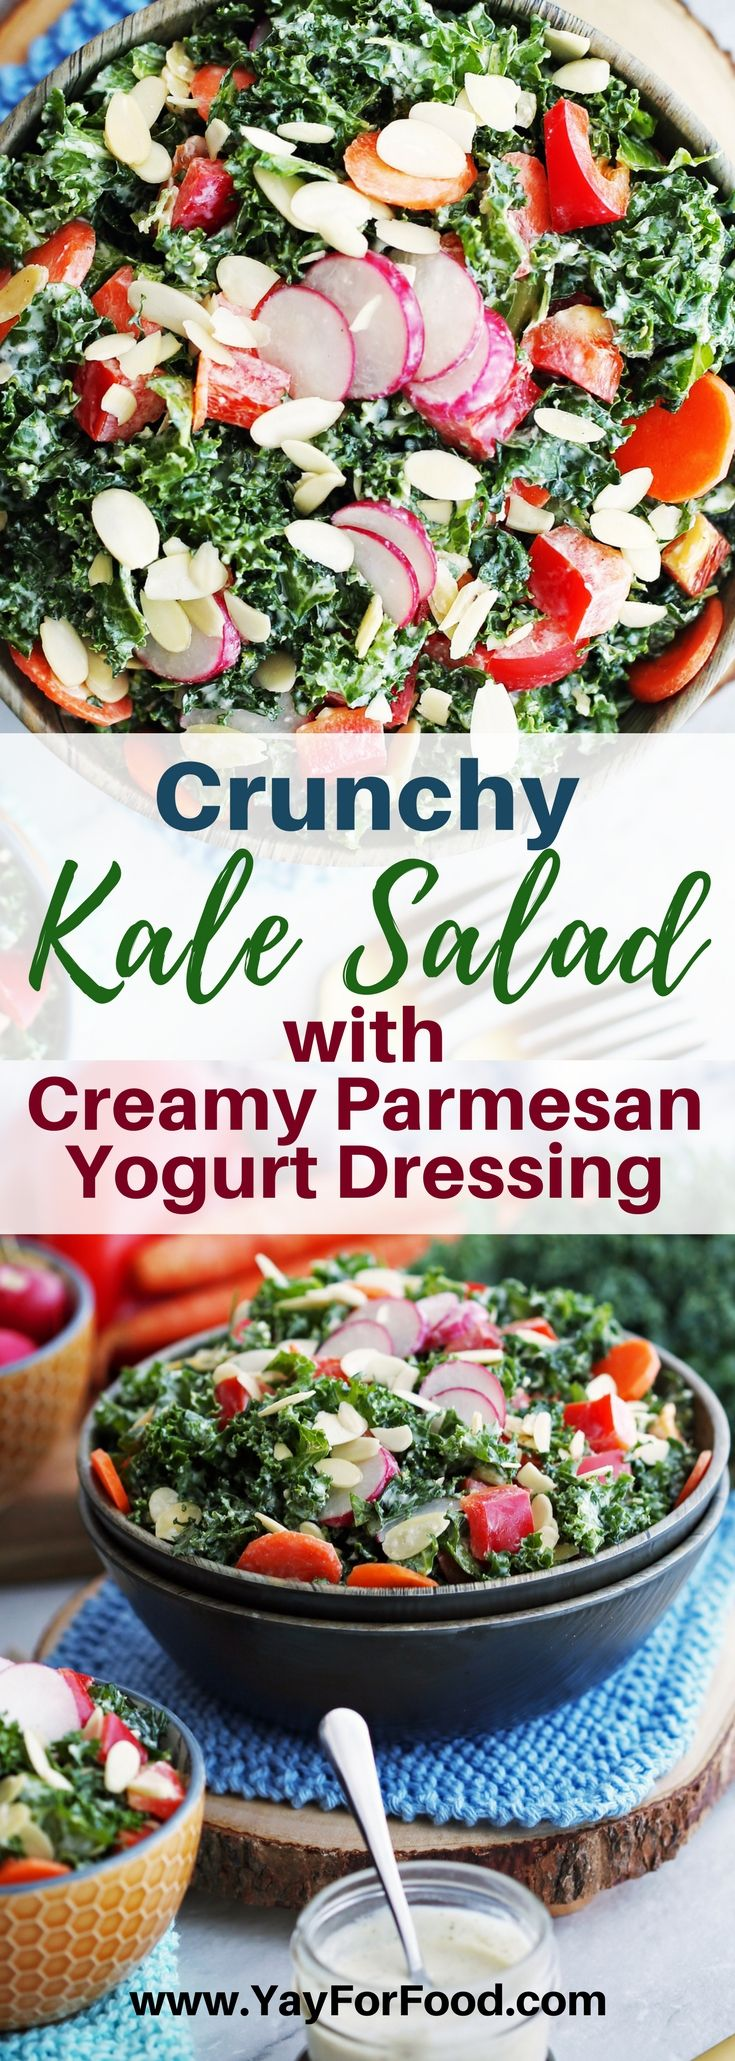 Crunchy Kale Salad with Creamy Parmesan Yogurt Dressing - Check out this delicious salad featuring nutritious green kale, colourful vegetables, and a savoury homemade parmesan dressing! #yayforfood | #salad | #healthy | #glutenfree | #glutenfreerecipes | #sidedishes | #dinner | #parmesan | #kale